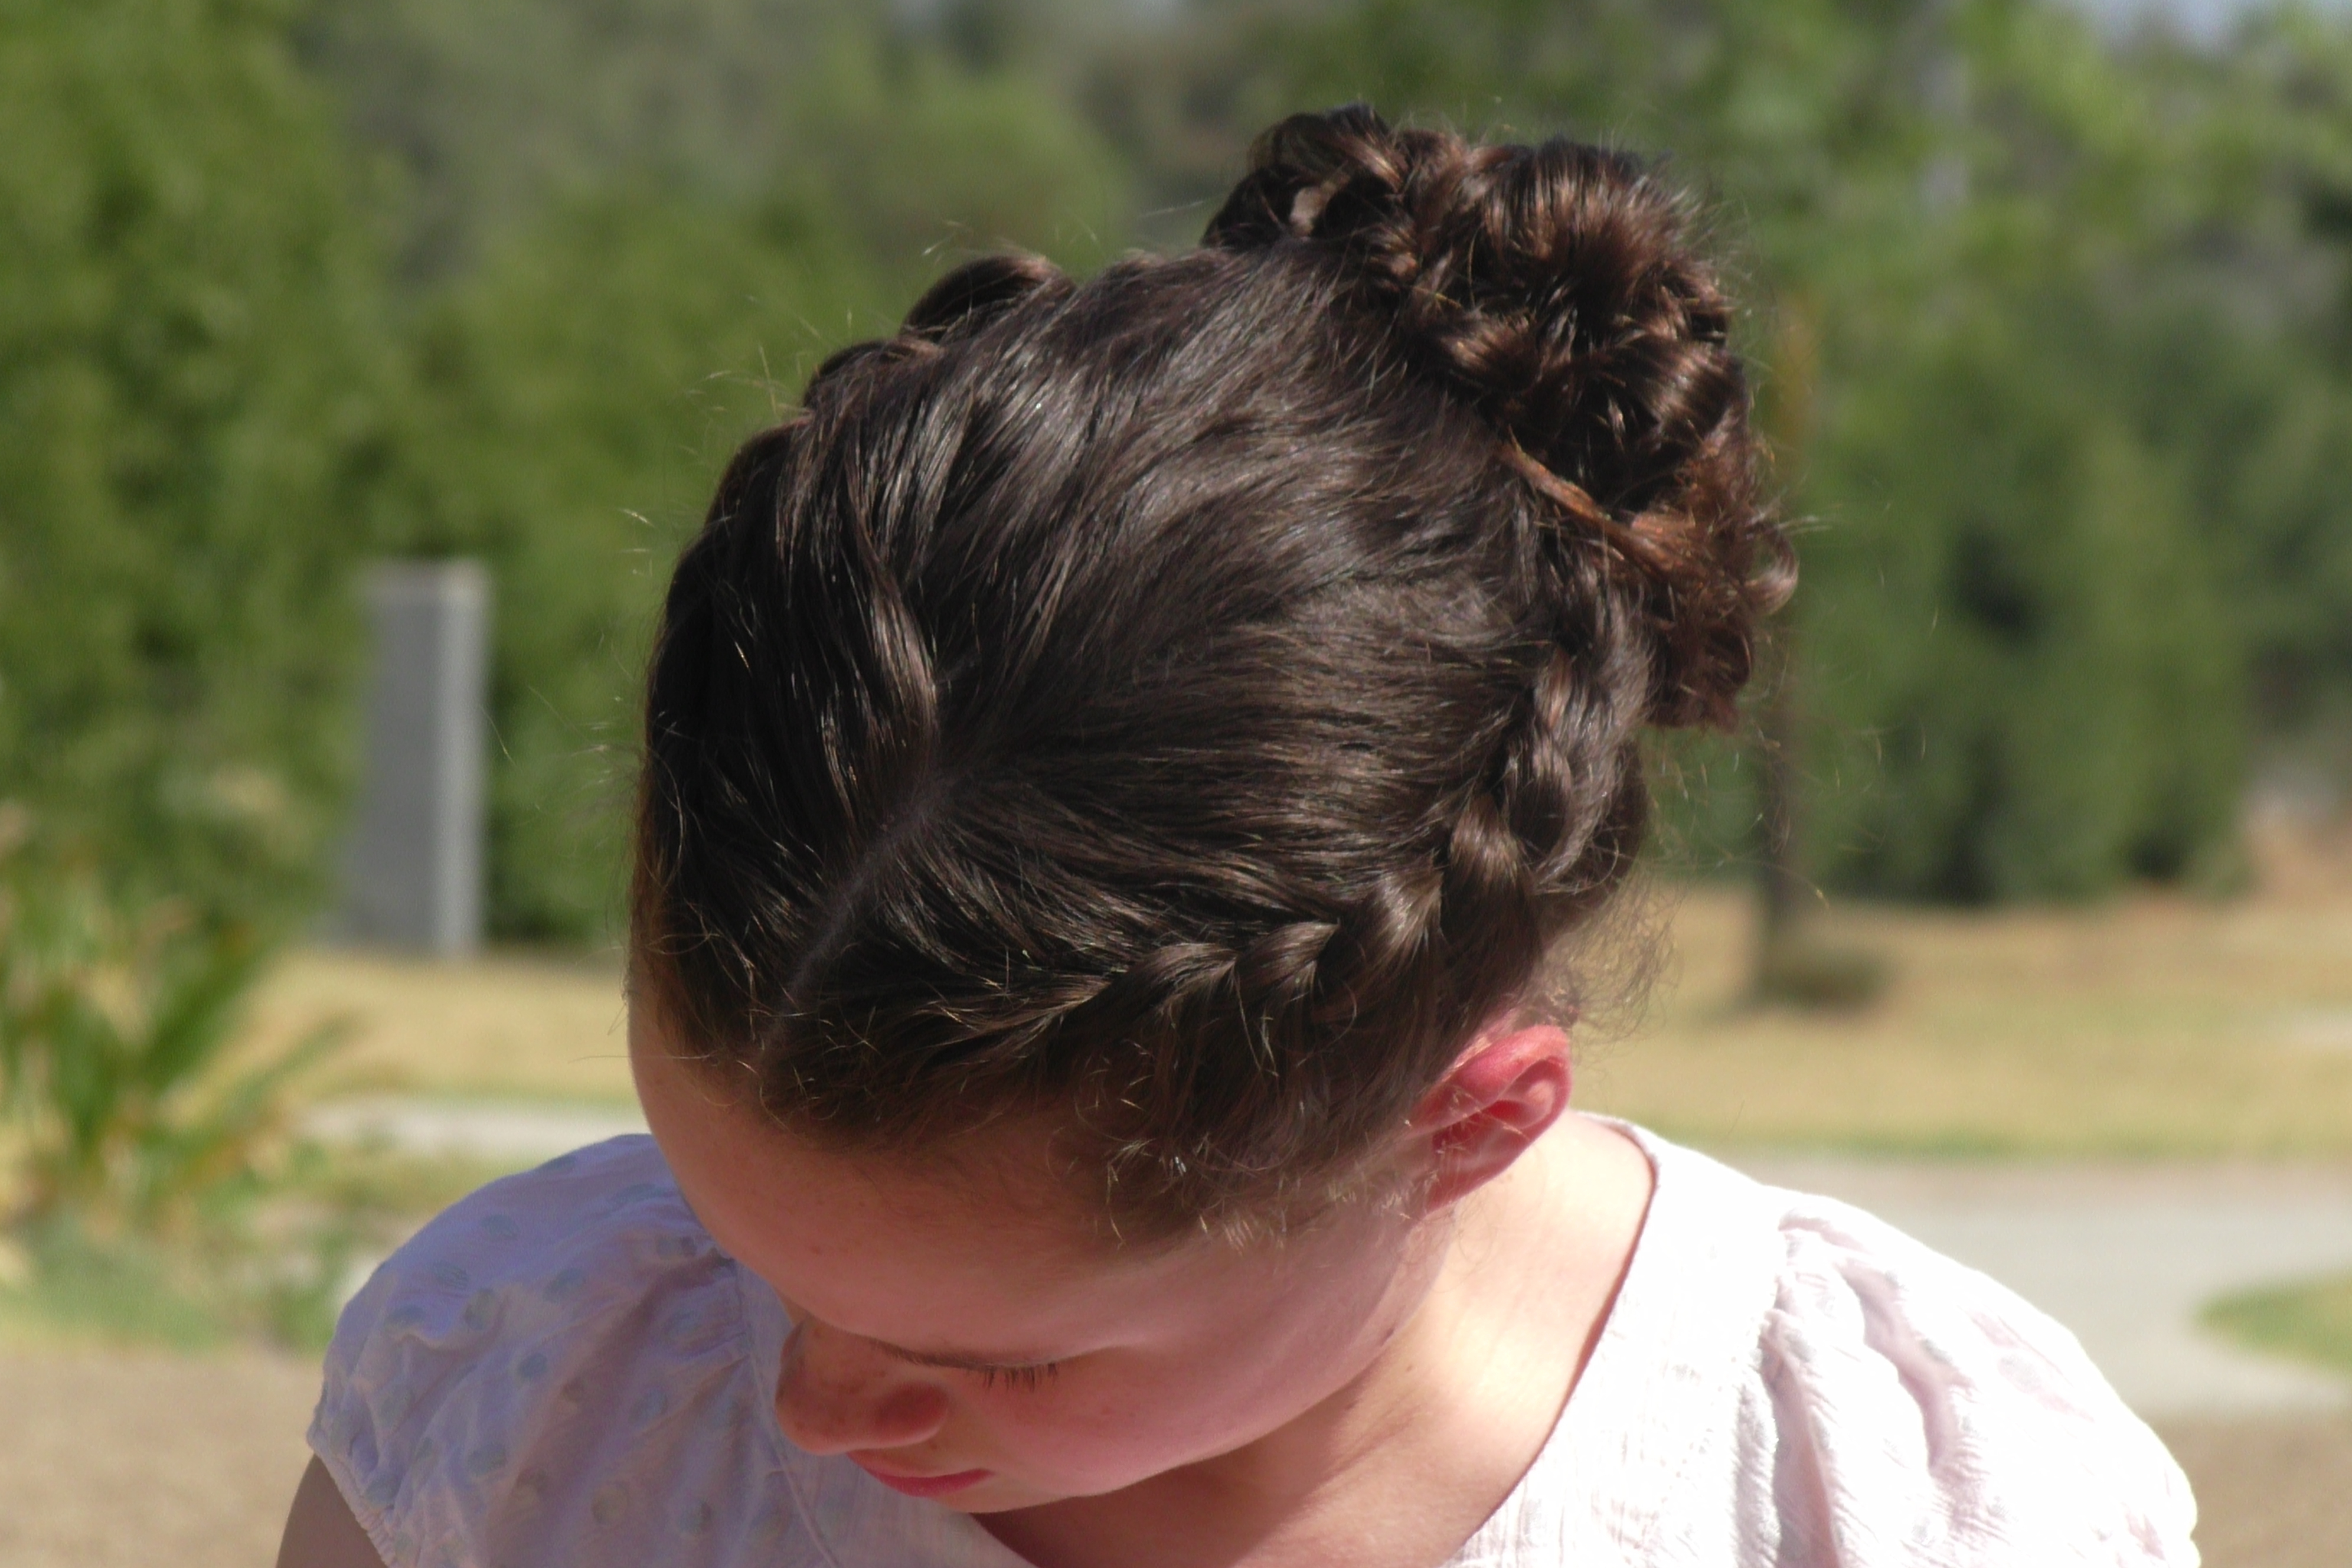 Hairstyles For Bad Hair Days Throughout Popular Messy Rope Braid Updo Hairstyles (View 20 of 20)